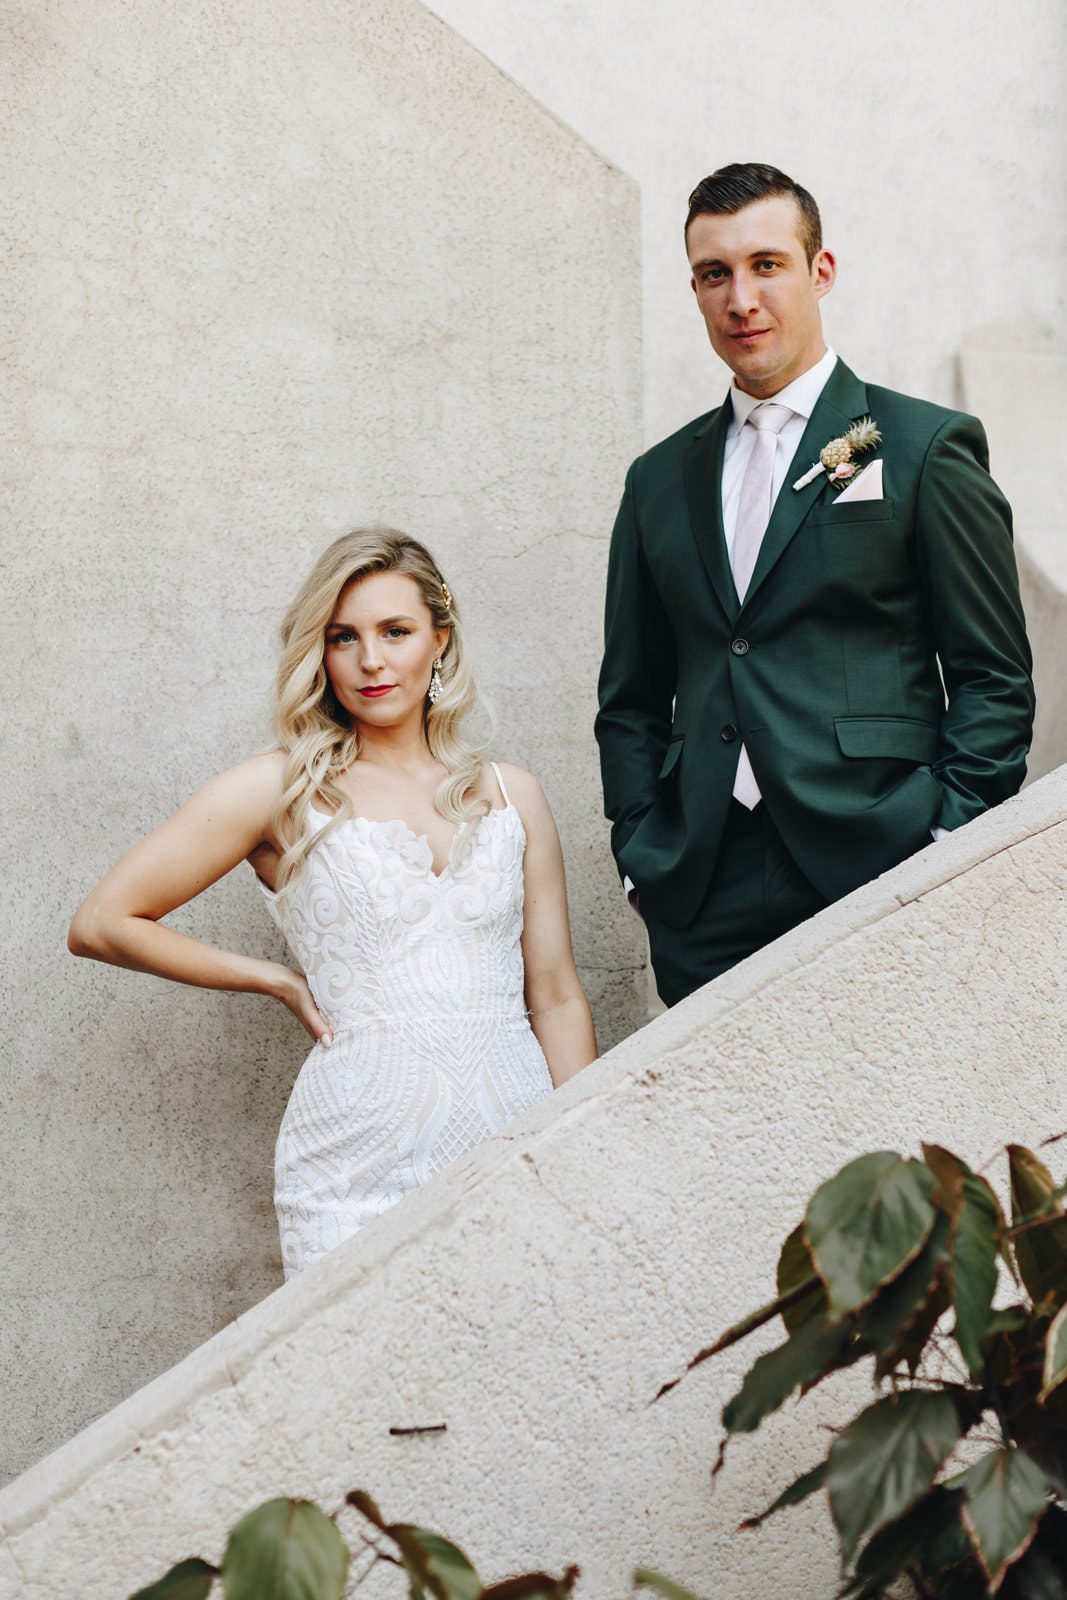 Wedding picture of bride and groom taken on the stairs.